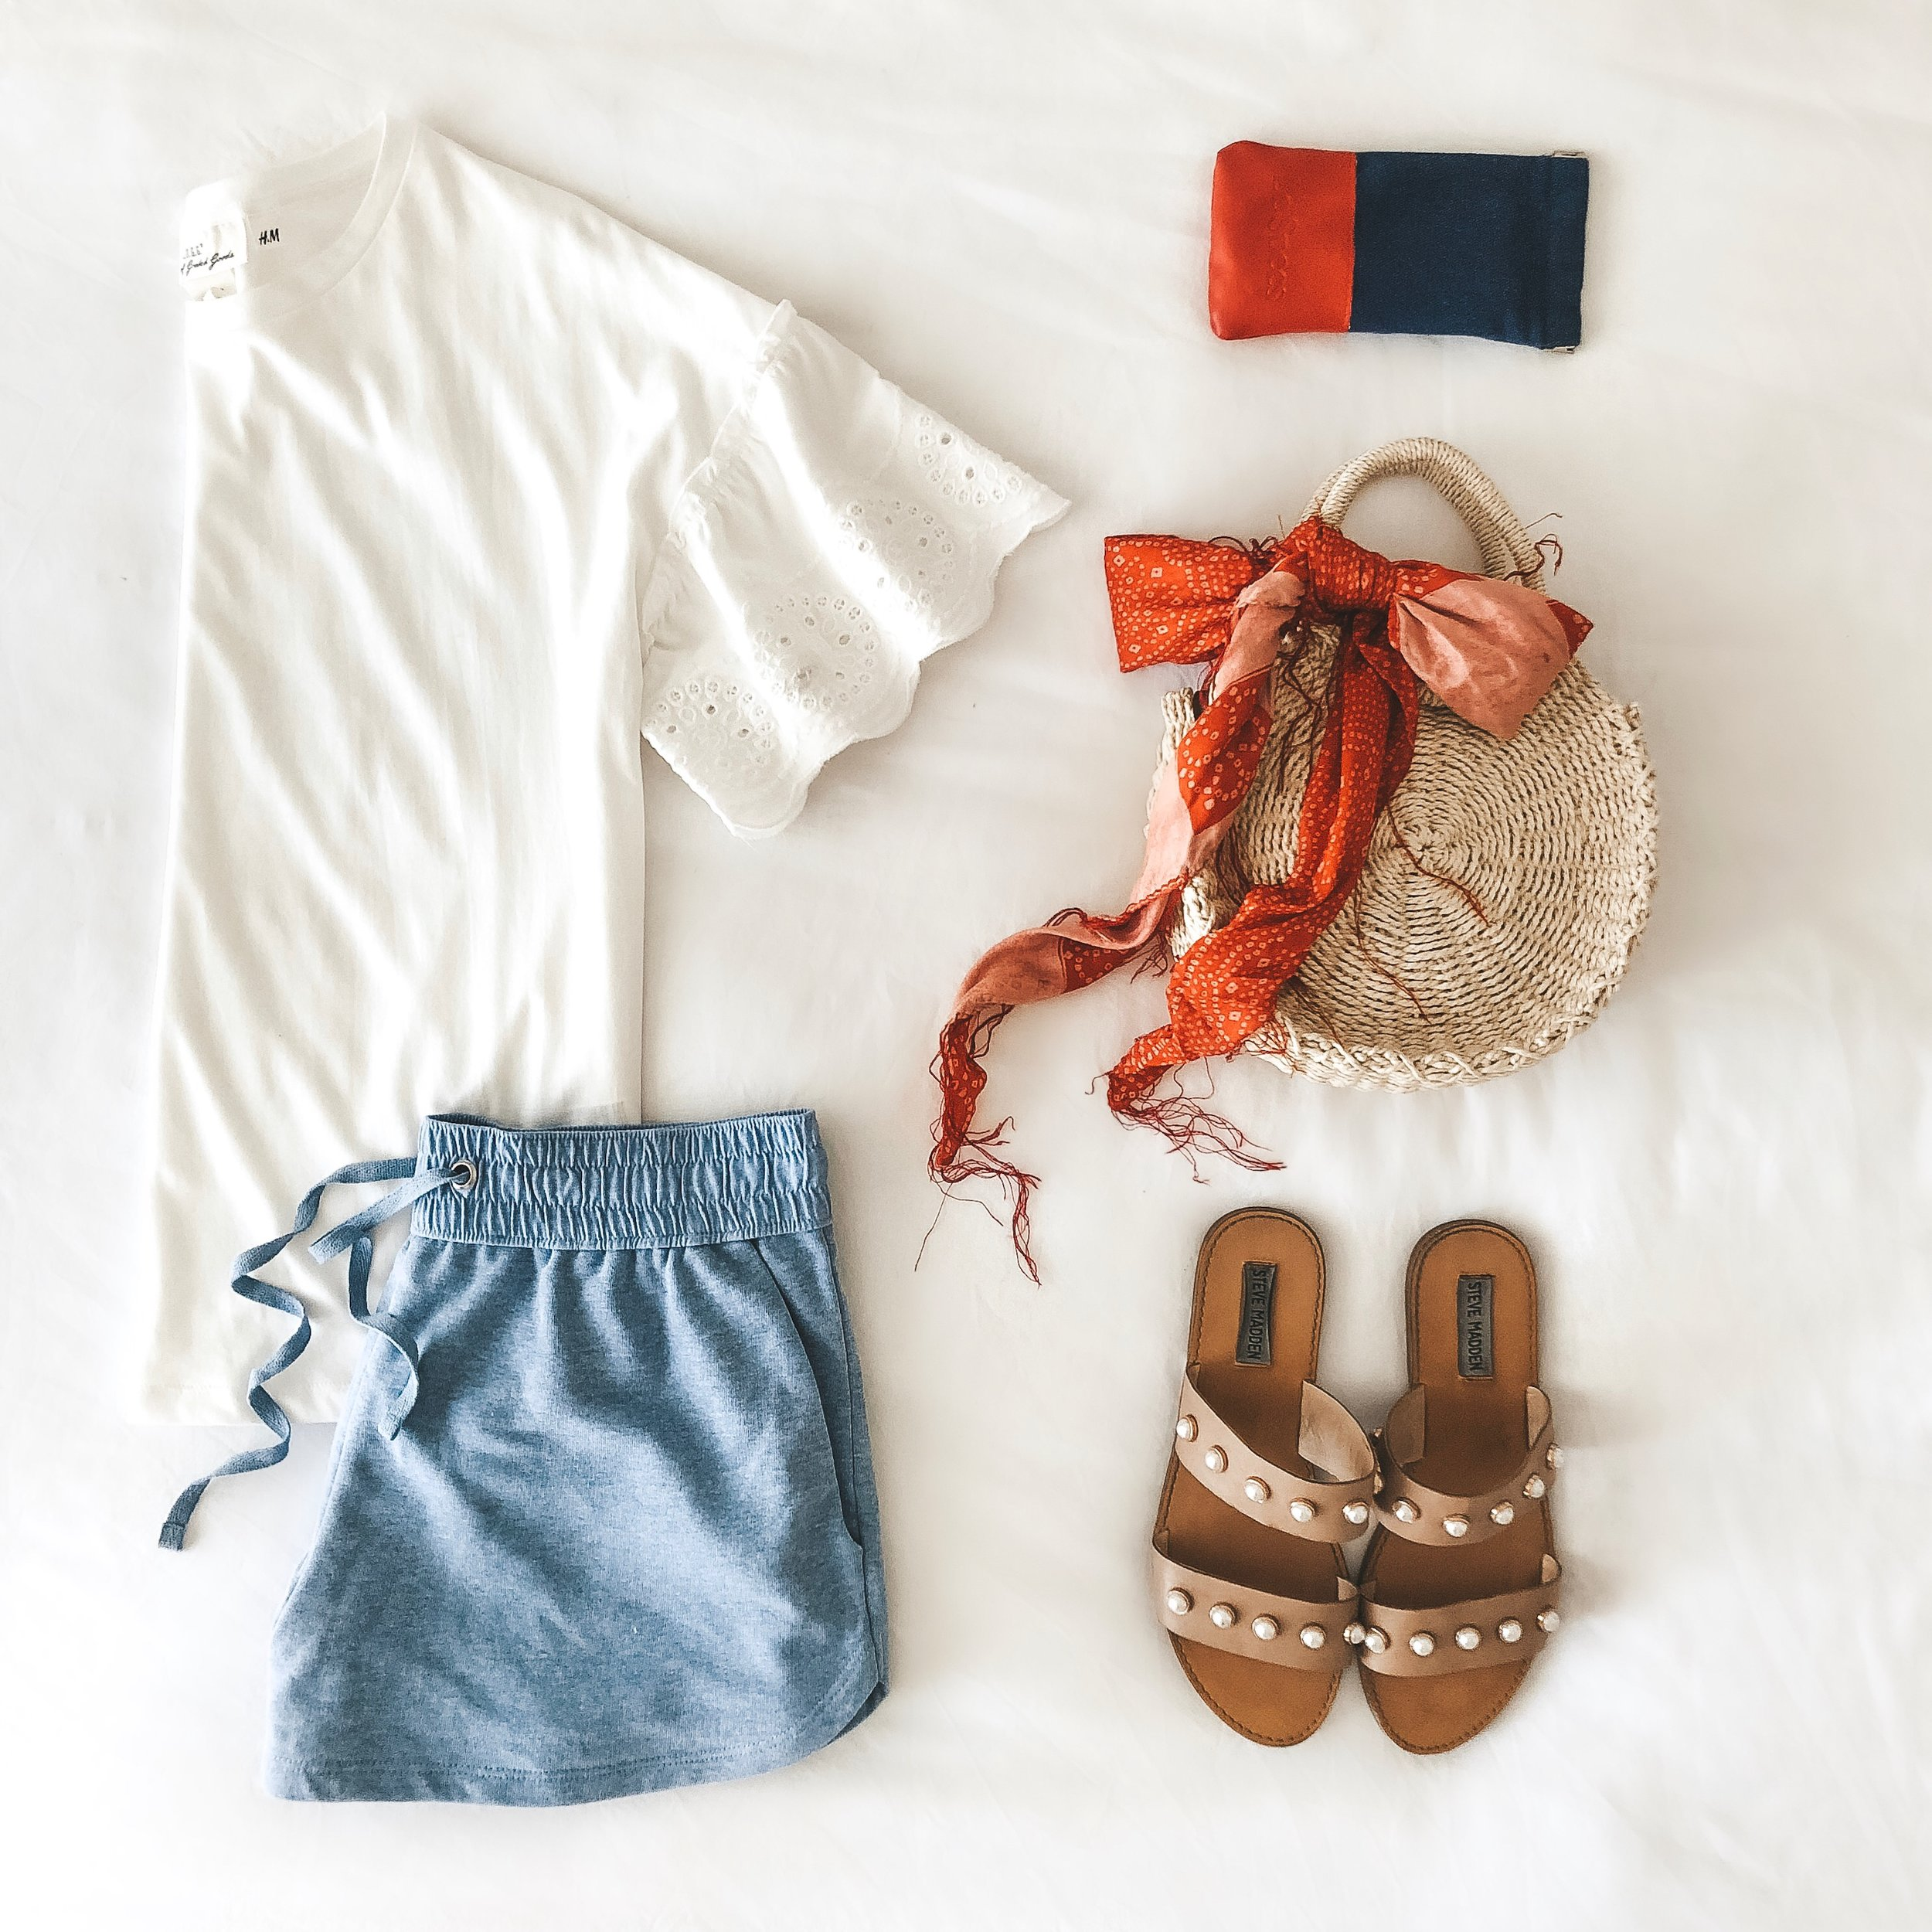 Casual Fourth of July outfit.  Sweatshorts with lace trim tee, Steve Madden pearl sandals, and straw tote.